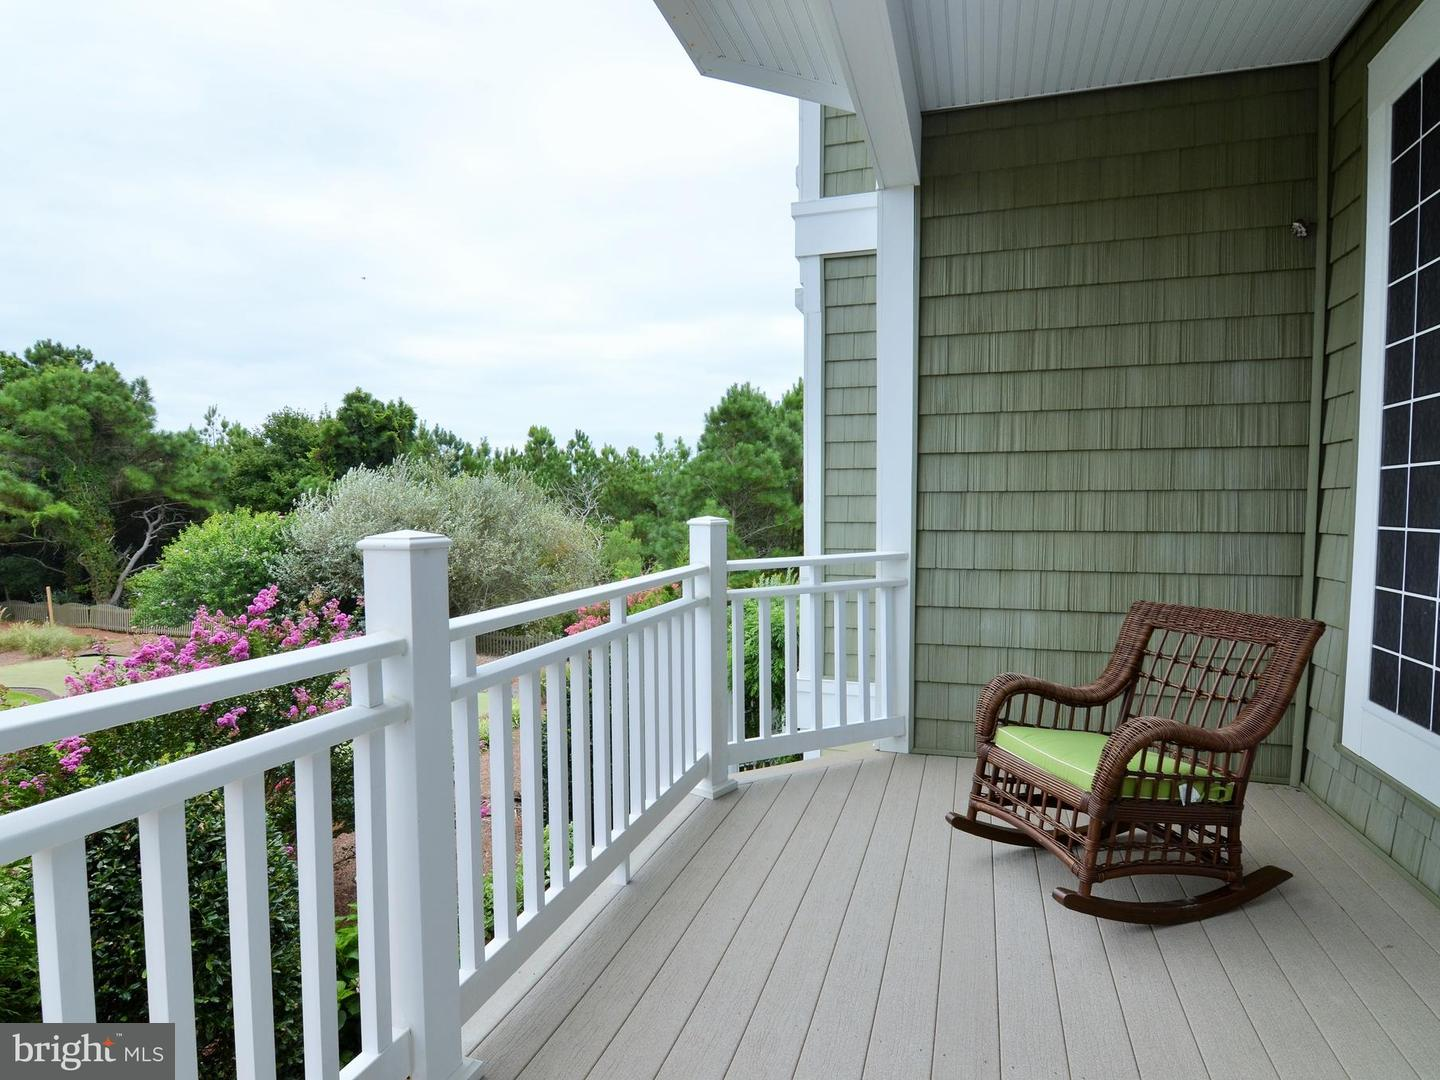 1002293530-300500807585-2018-09-25-15-08-25 31 Hall Ave | Rehoboth Beach, DE Real Estate For Sale | MLS# 1002293530  - 1st Choice Properties